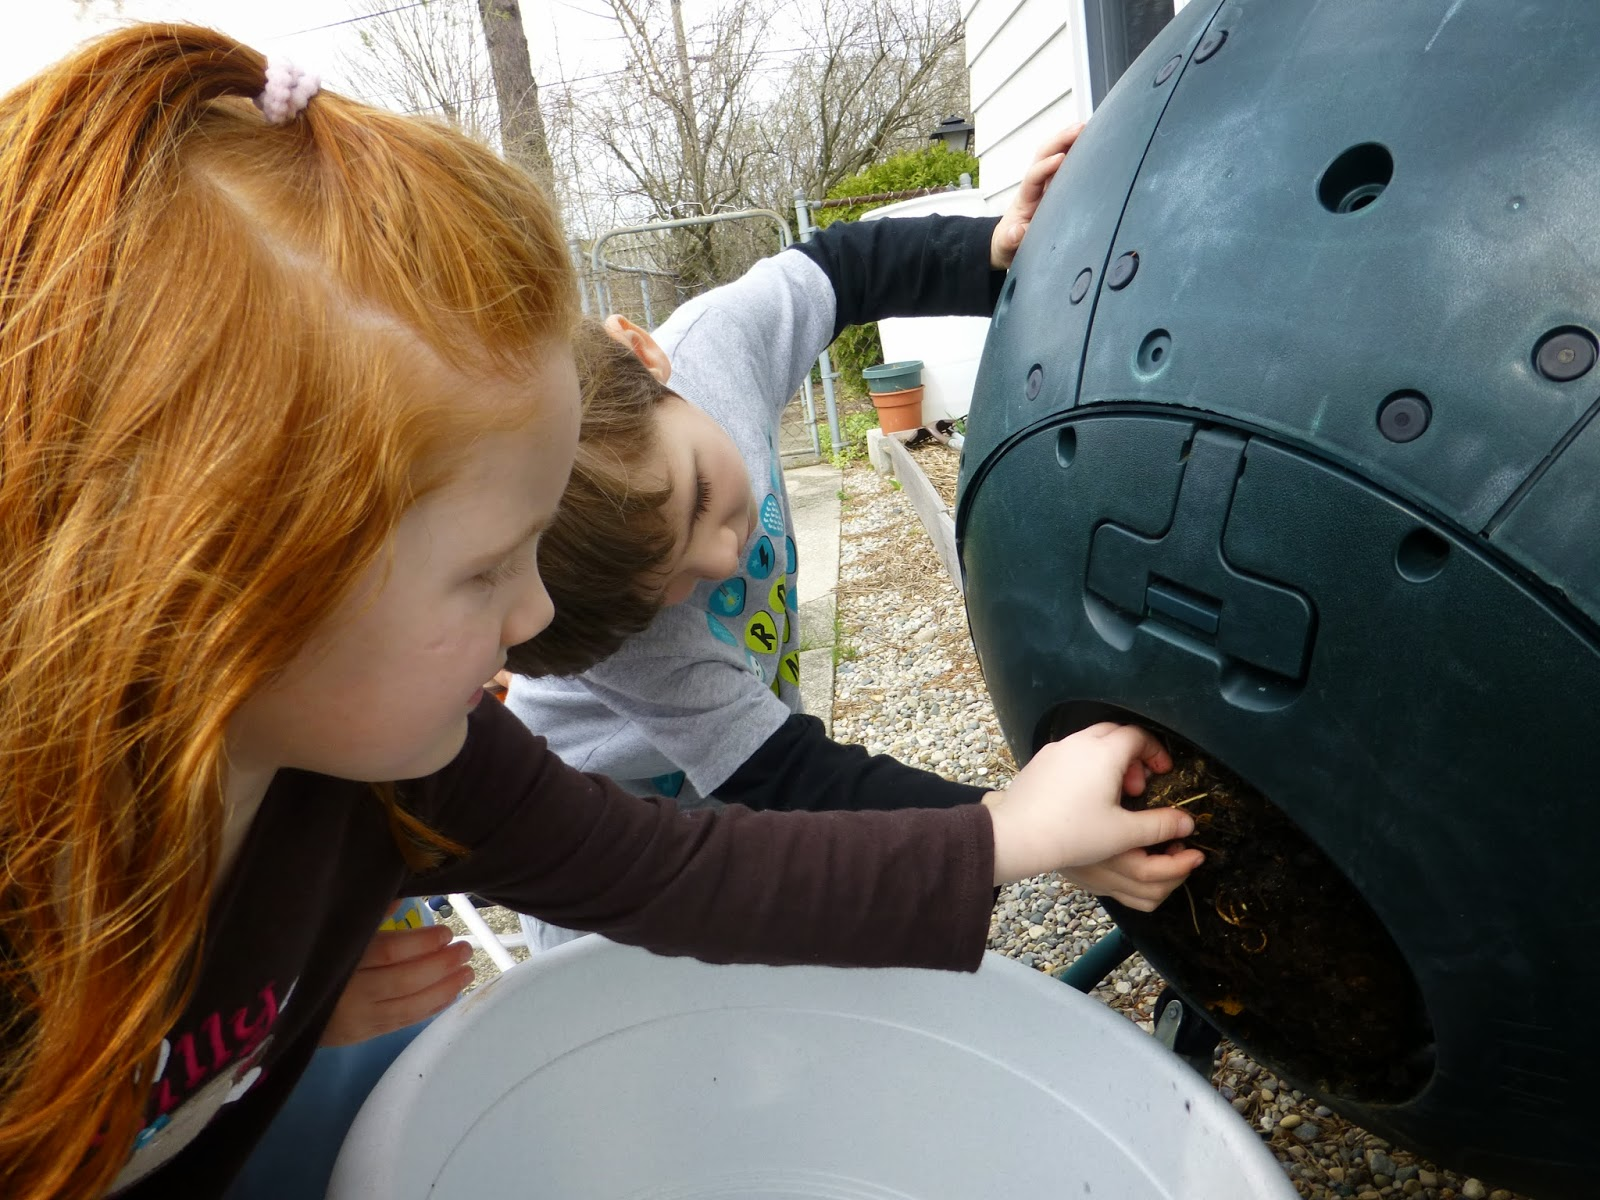 we have three systems this ball a bin made of pallets and a worm bin the ball is pretty and keeps all the bugs enclosed